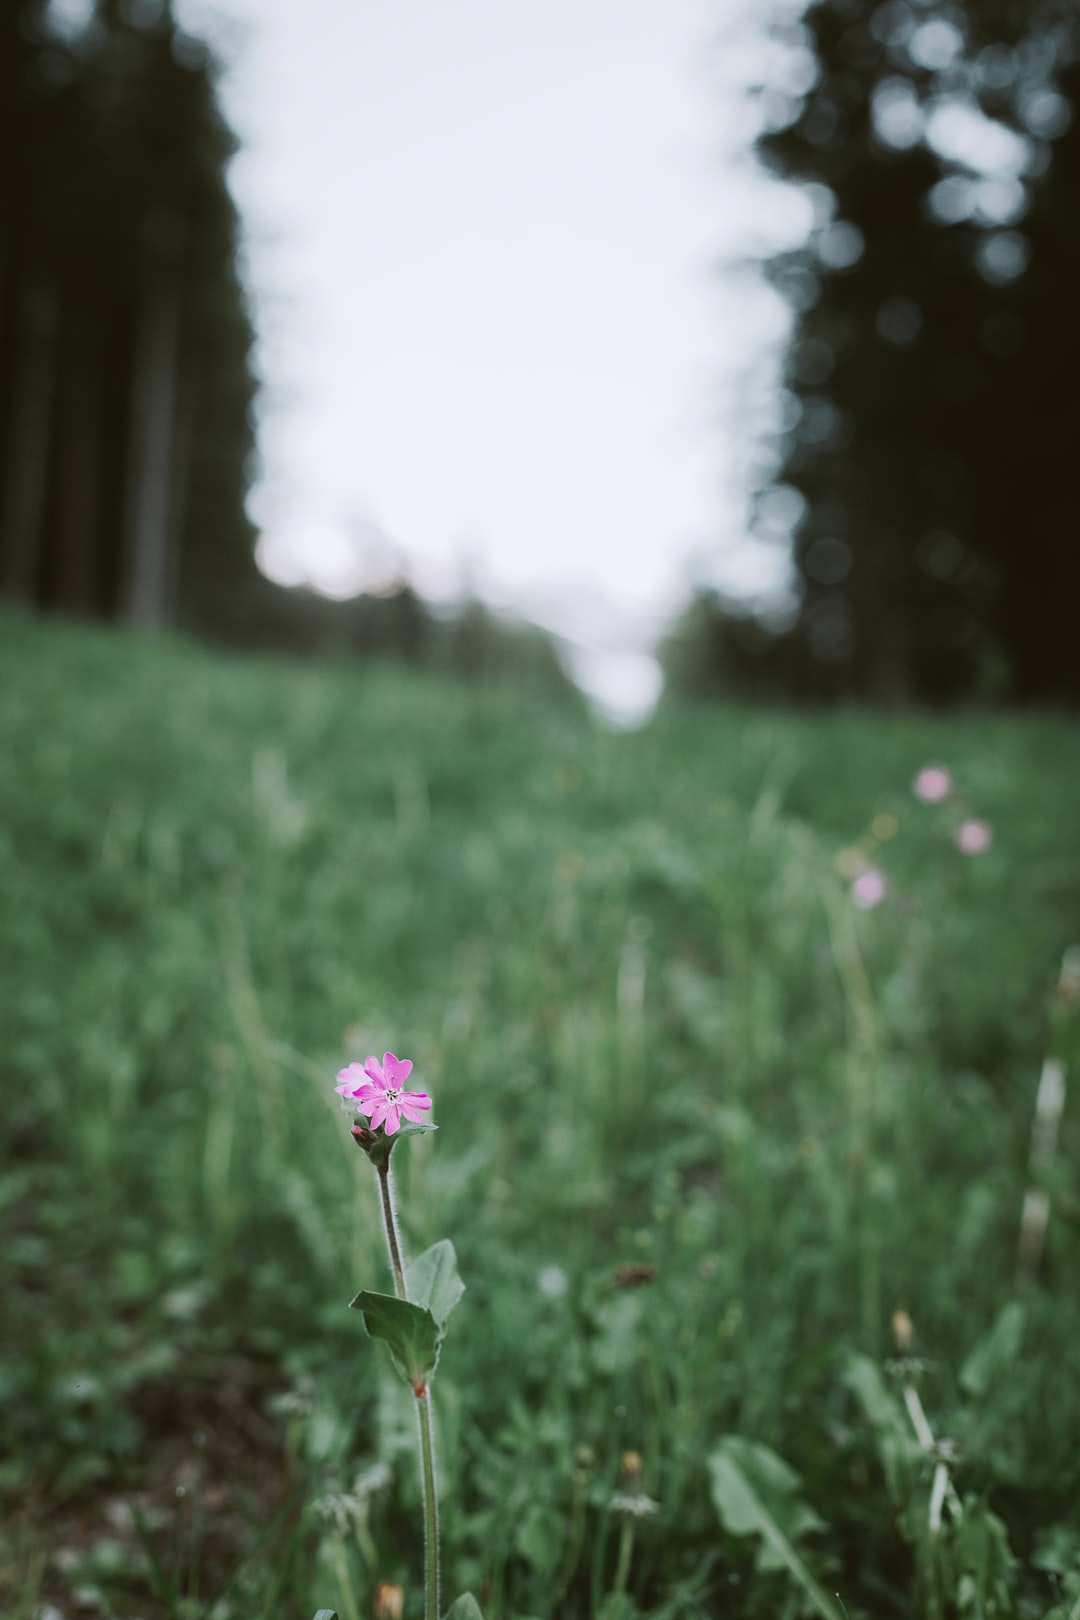 Red campion or its scientific name silene dioica.